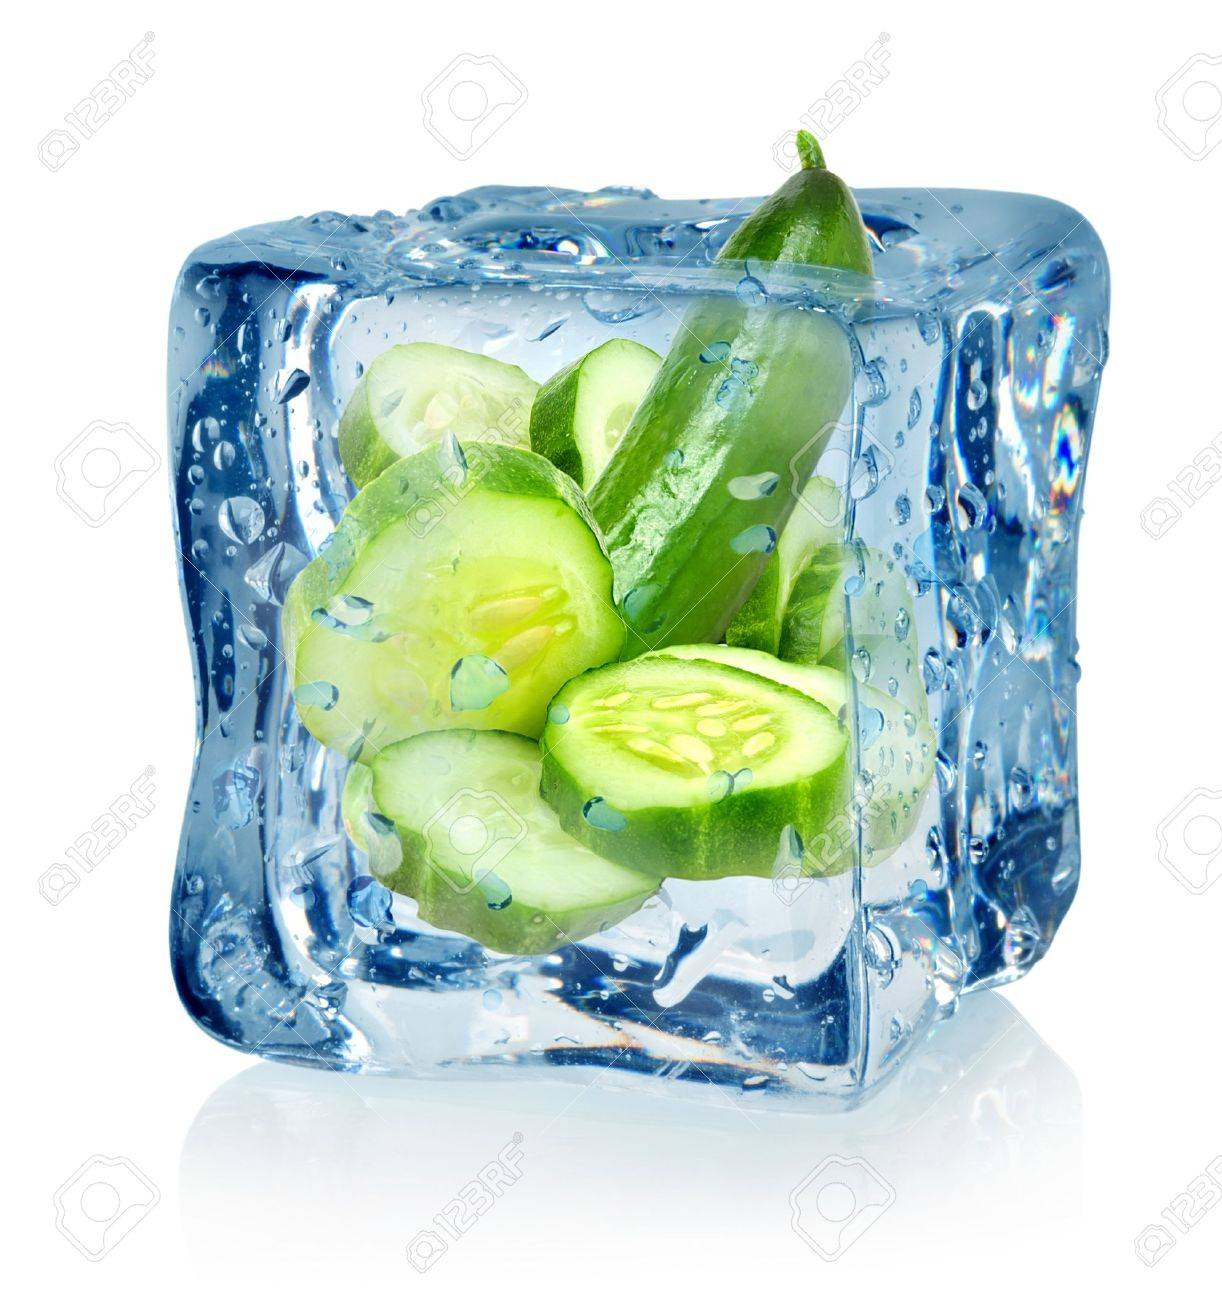 Ice cube and cucumber Stock Photo - 16719443